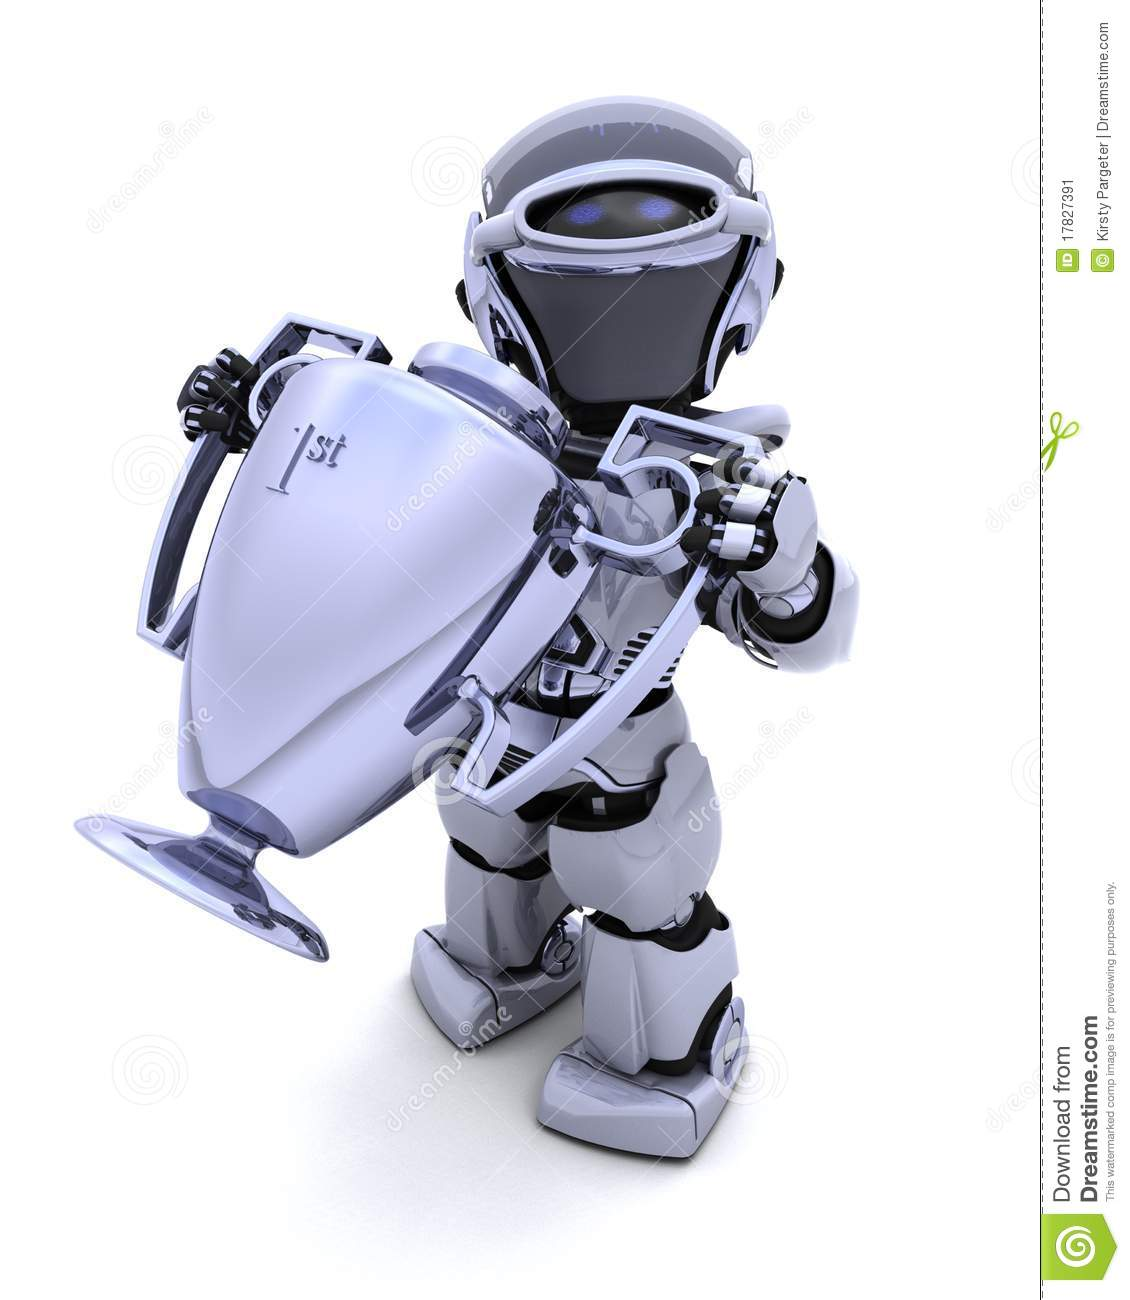 Robot With A Trophy Stock Image - Image: 17827391